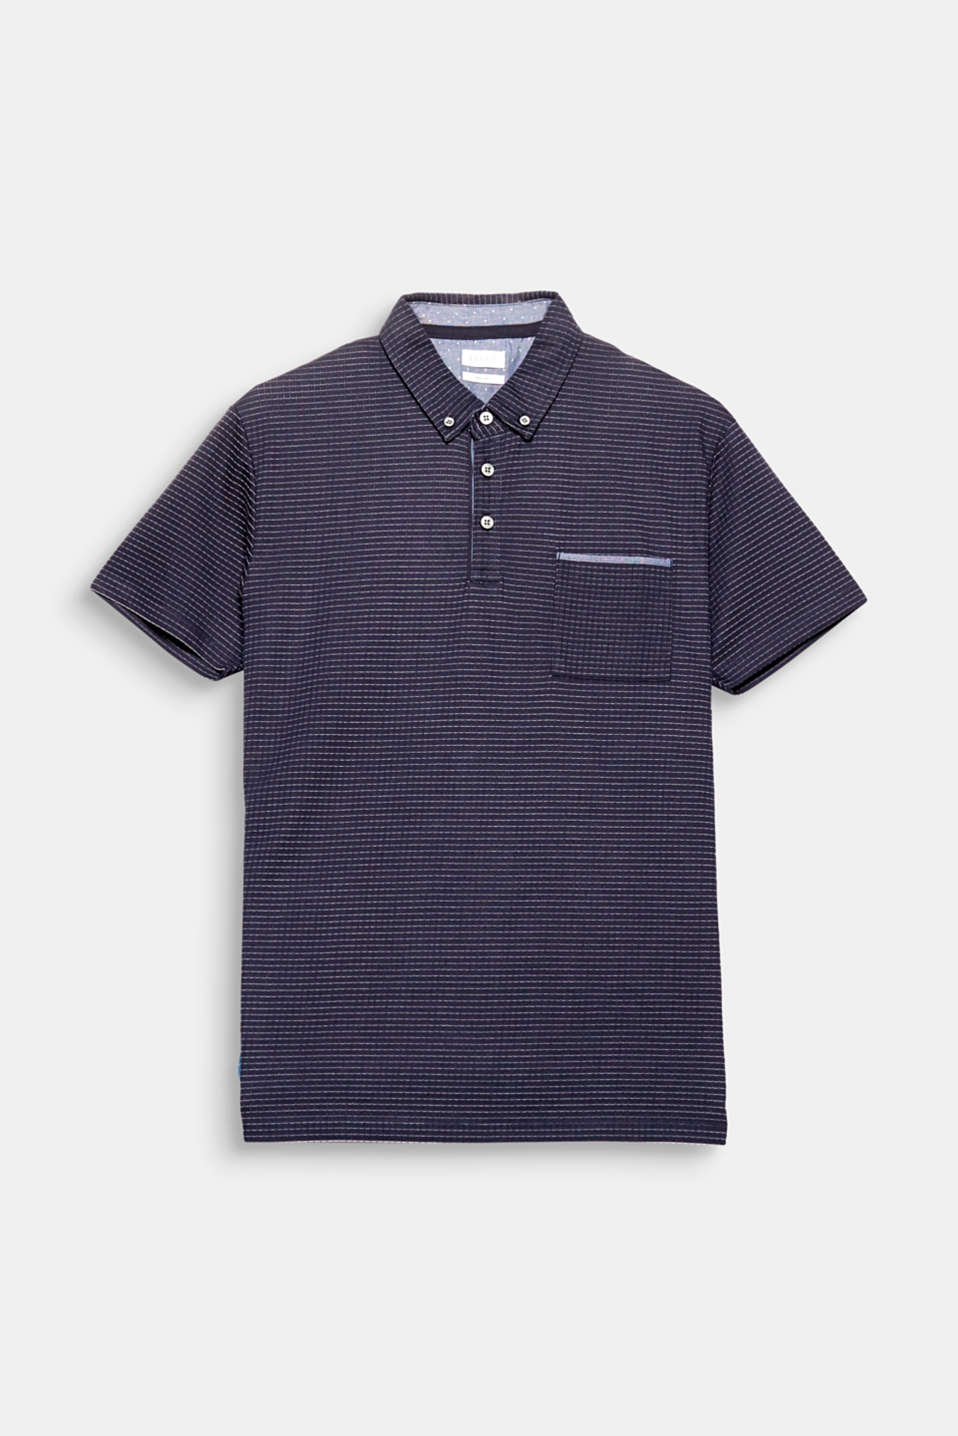 The fine grid texture and the button-down collar are fine details of this cotton blend polo shirt.